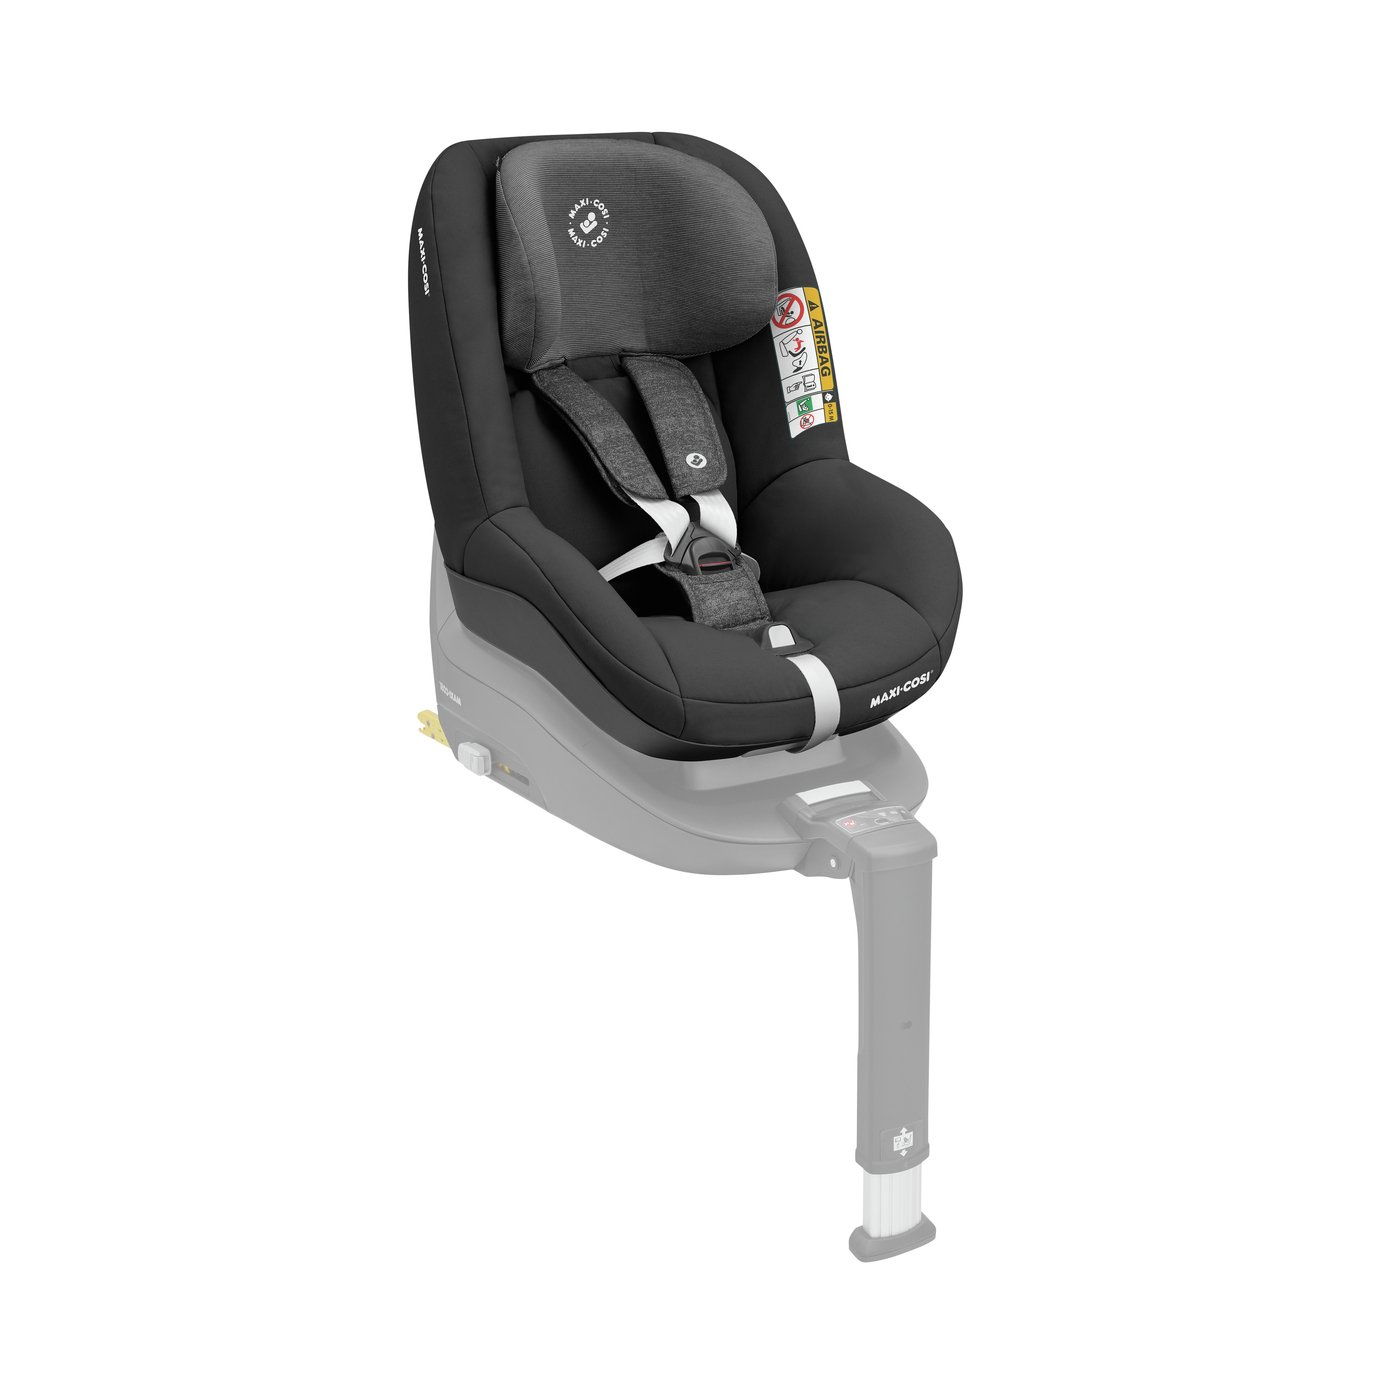 Buy Maxi-Cosi Pearl Smart i-Size Car Seat